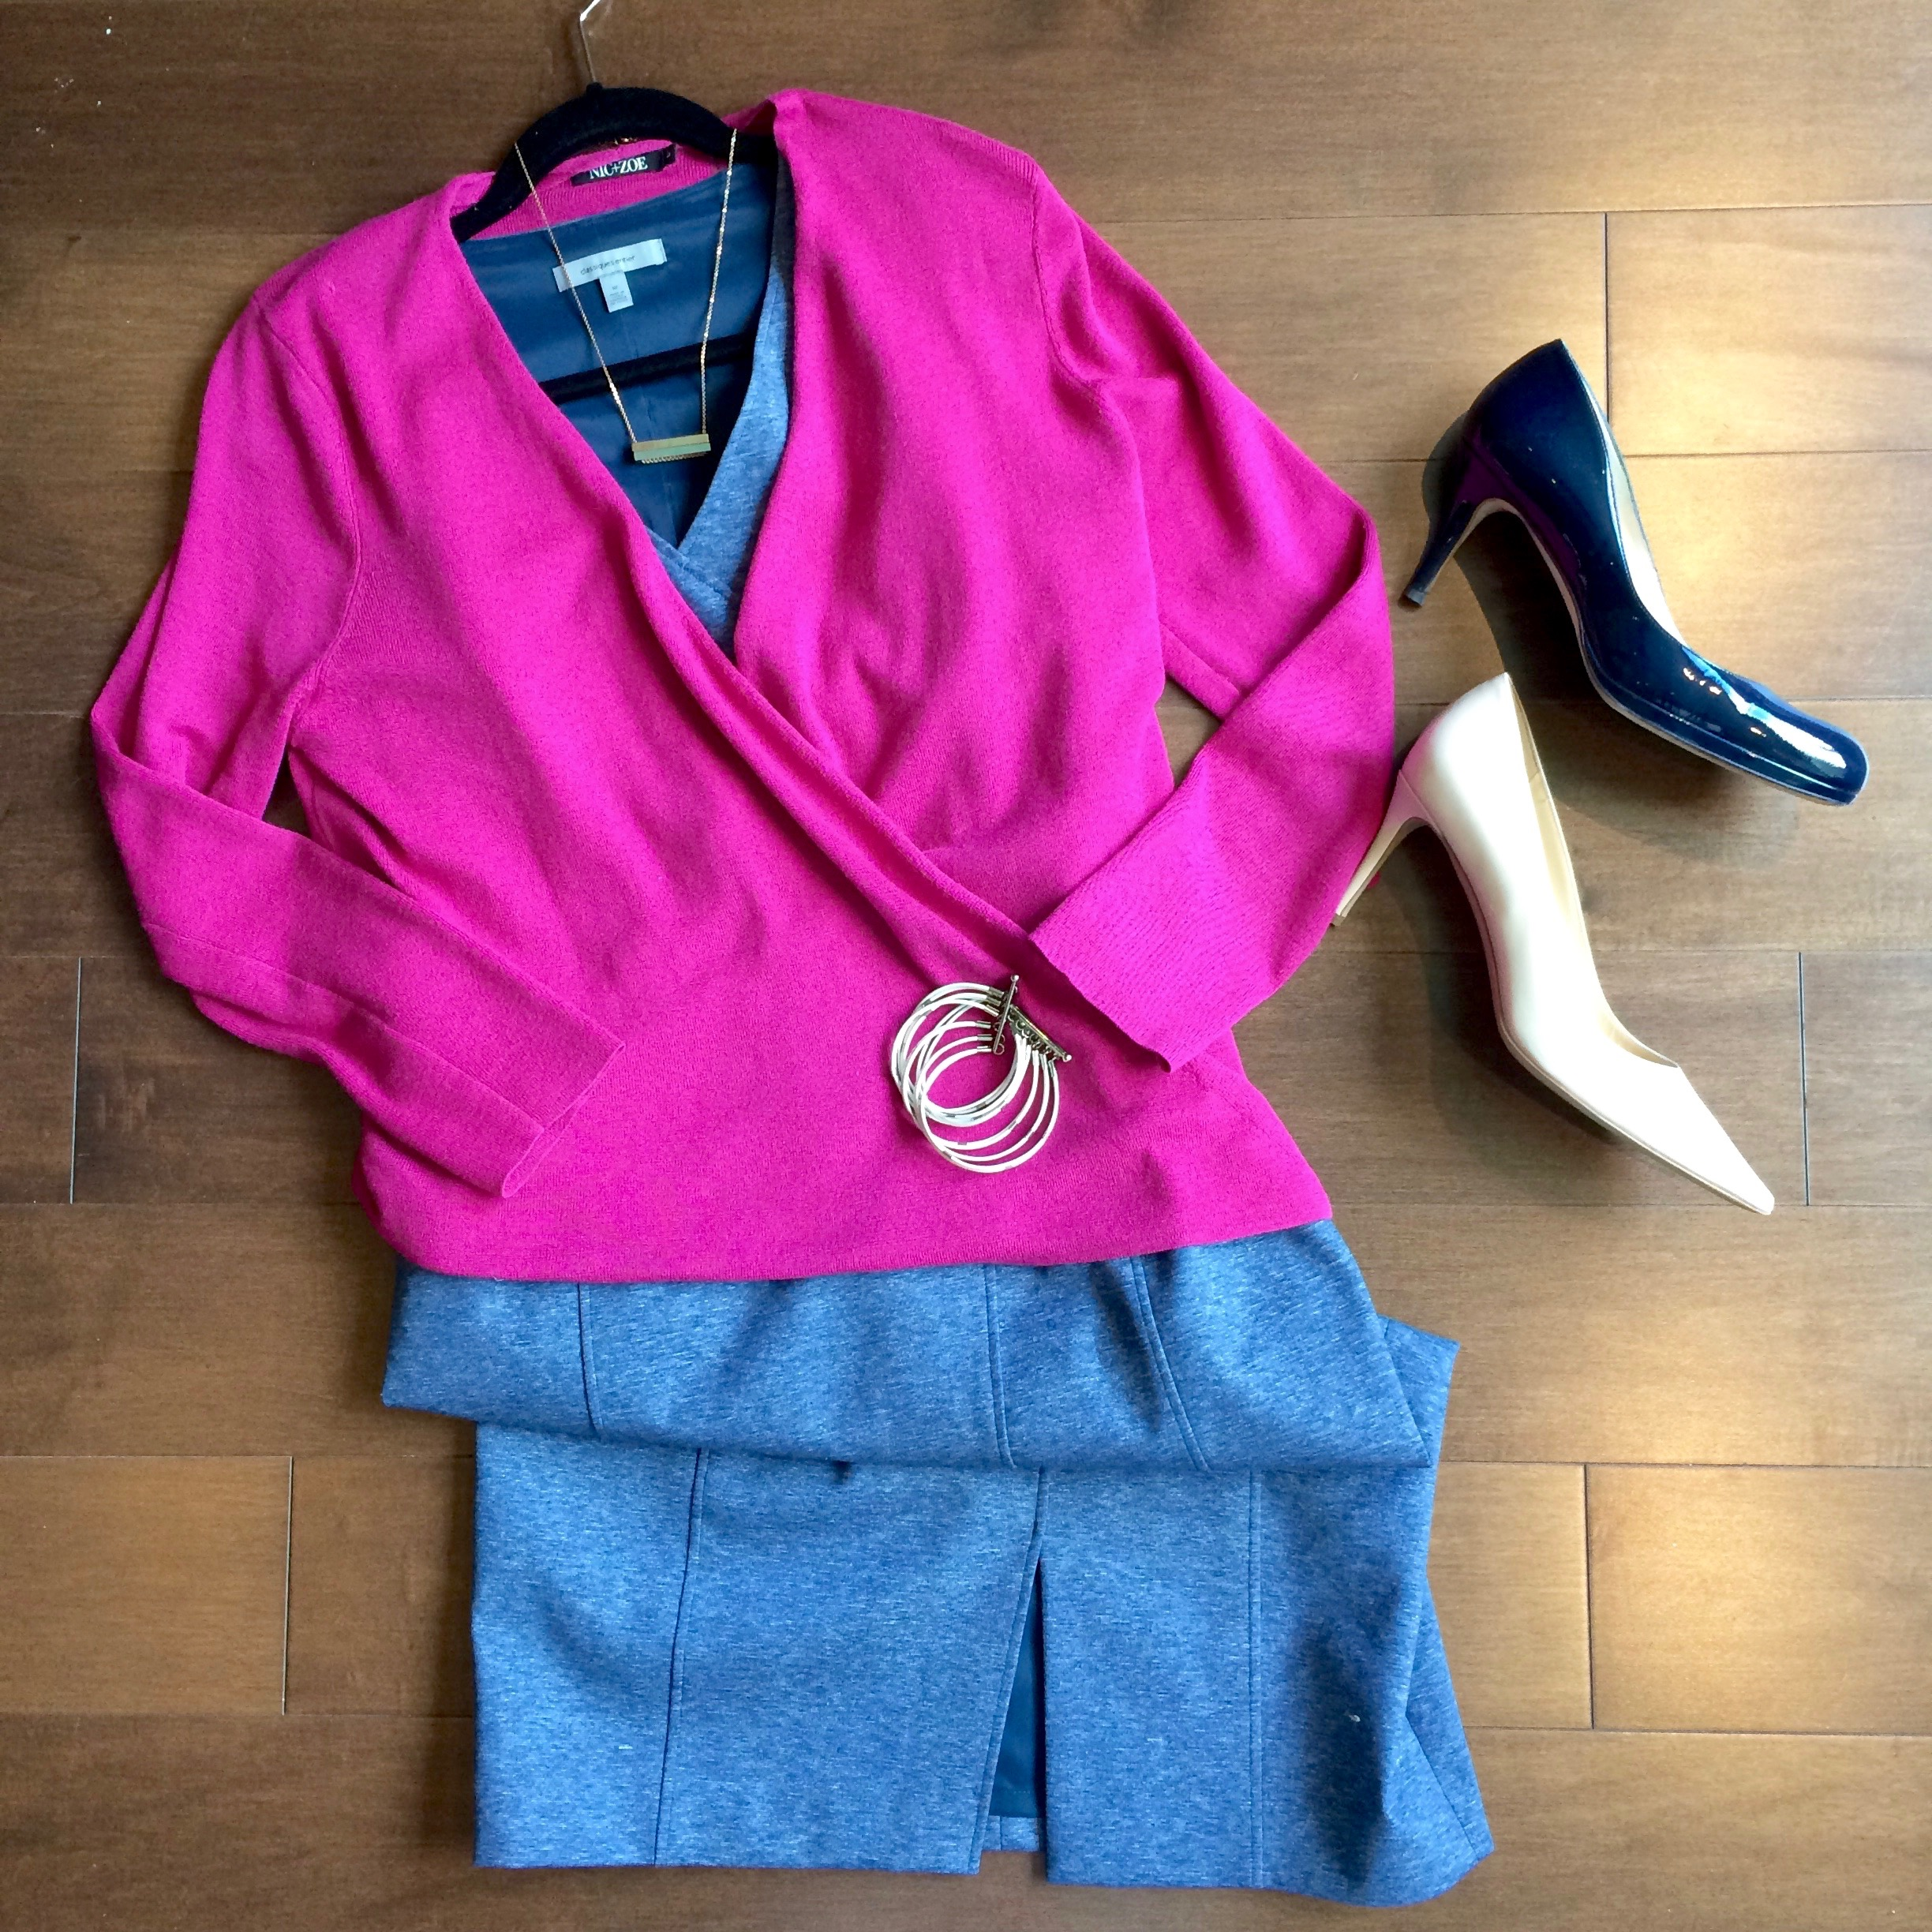 The same client (as above) has occasional dressier days at work - so I again grabbed the fuchsia cardigan, and paired it with an indigo dress. She can take this outfit from workday to dinner with clients, without missing a beat.